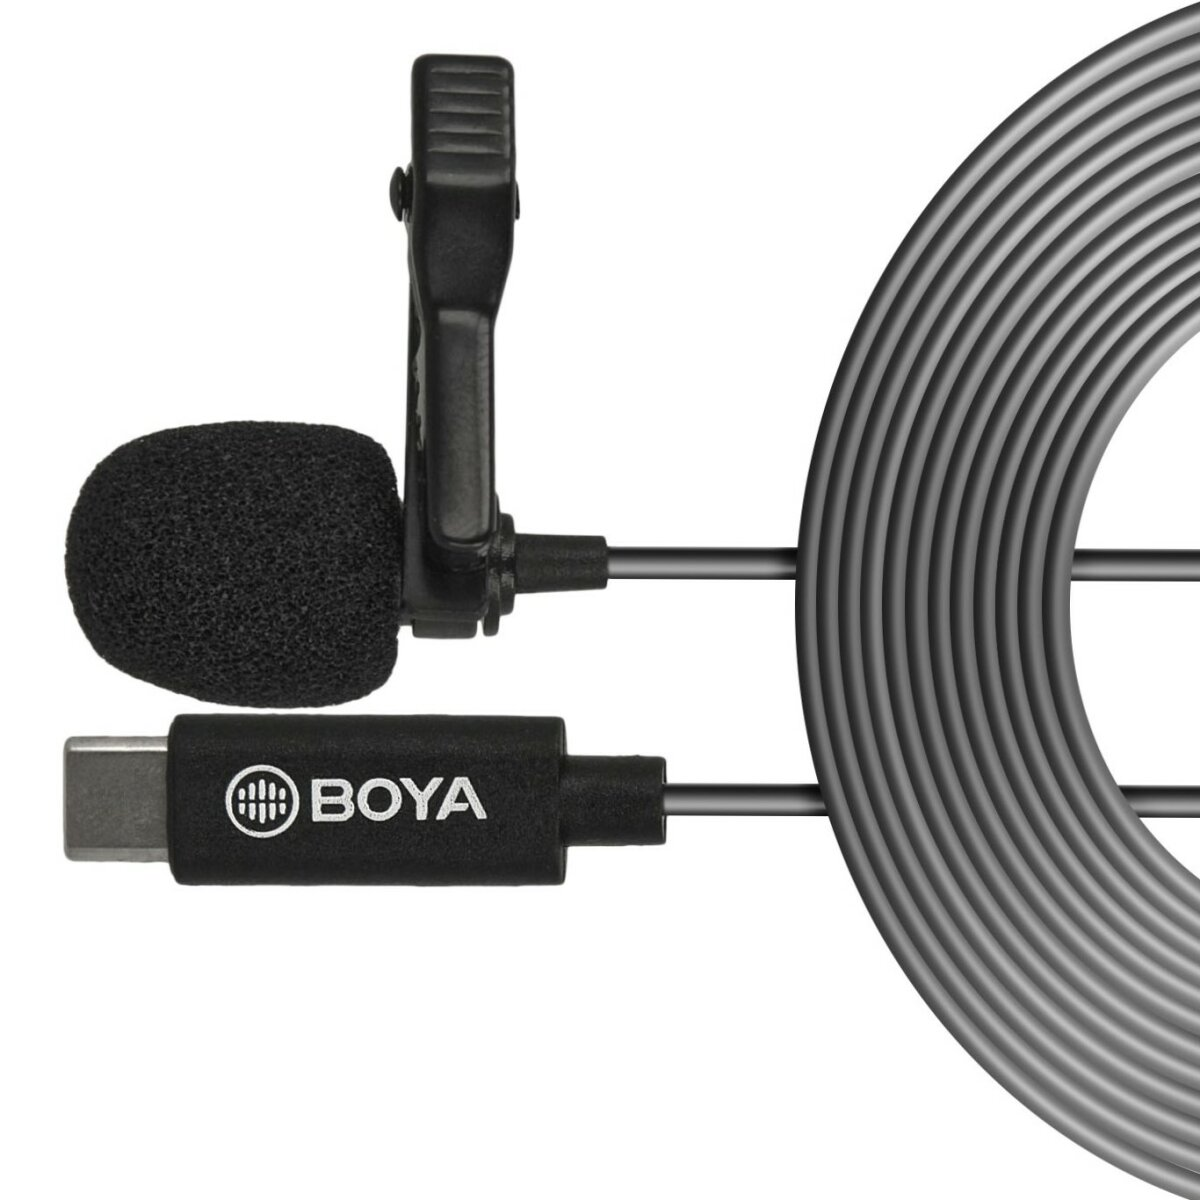 BOYA Lapel microphone for Android smartphones - BY-M3